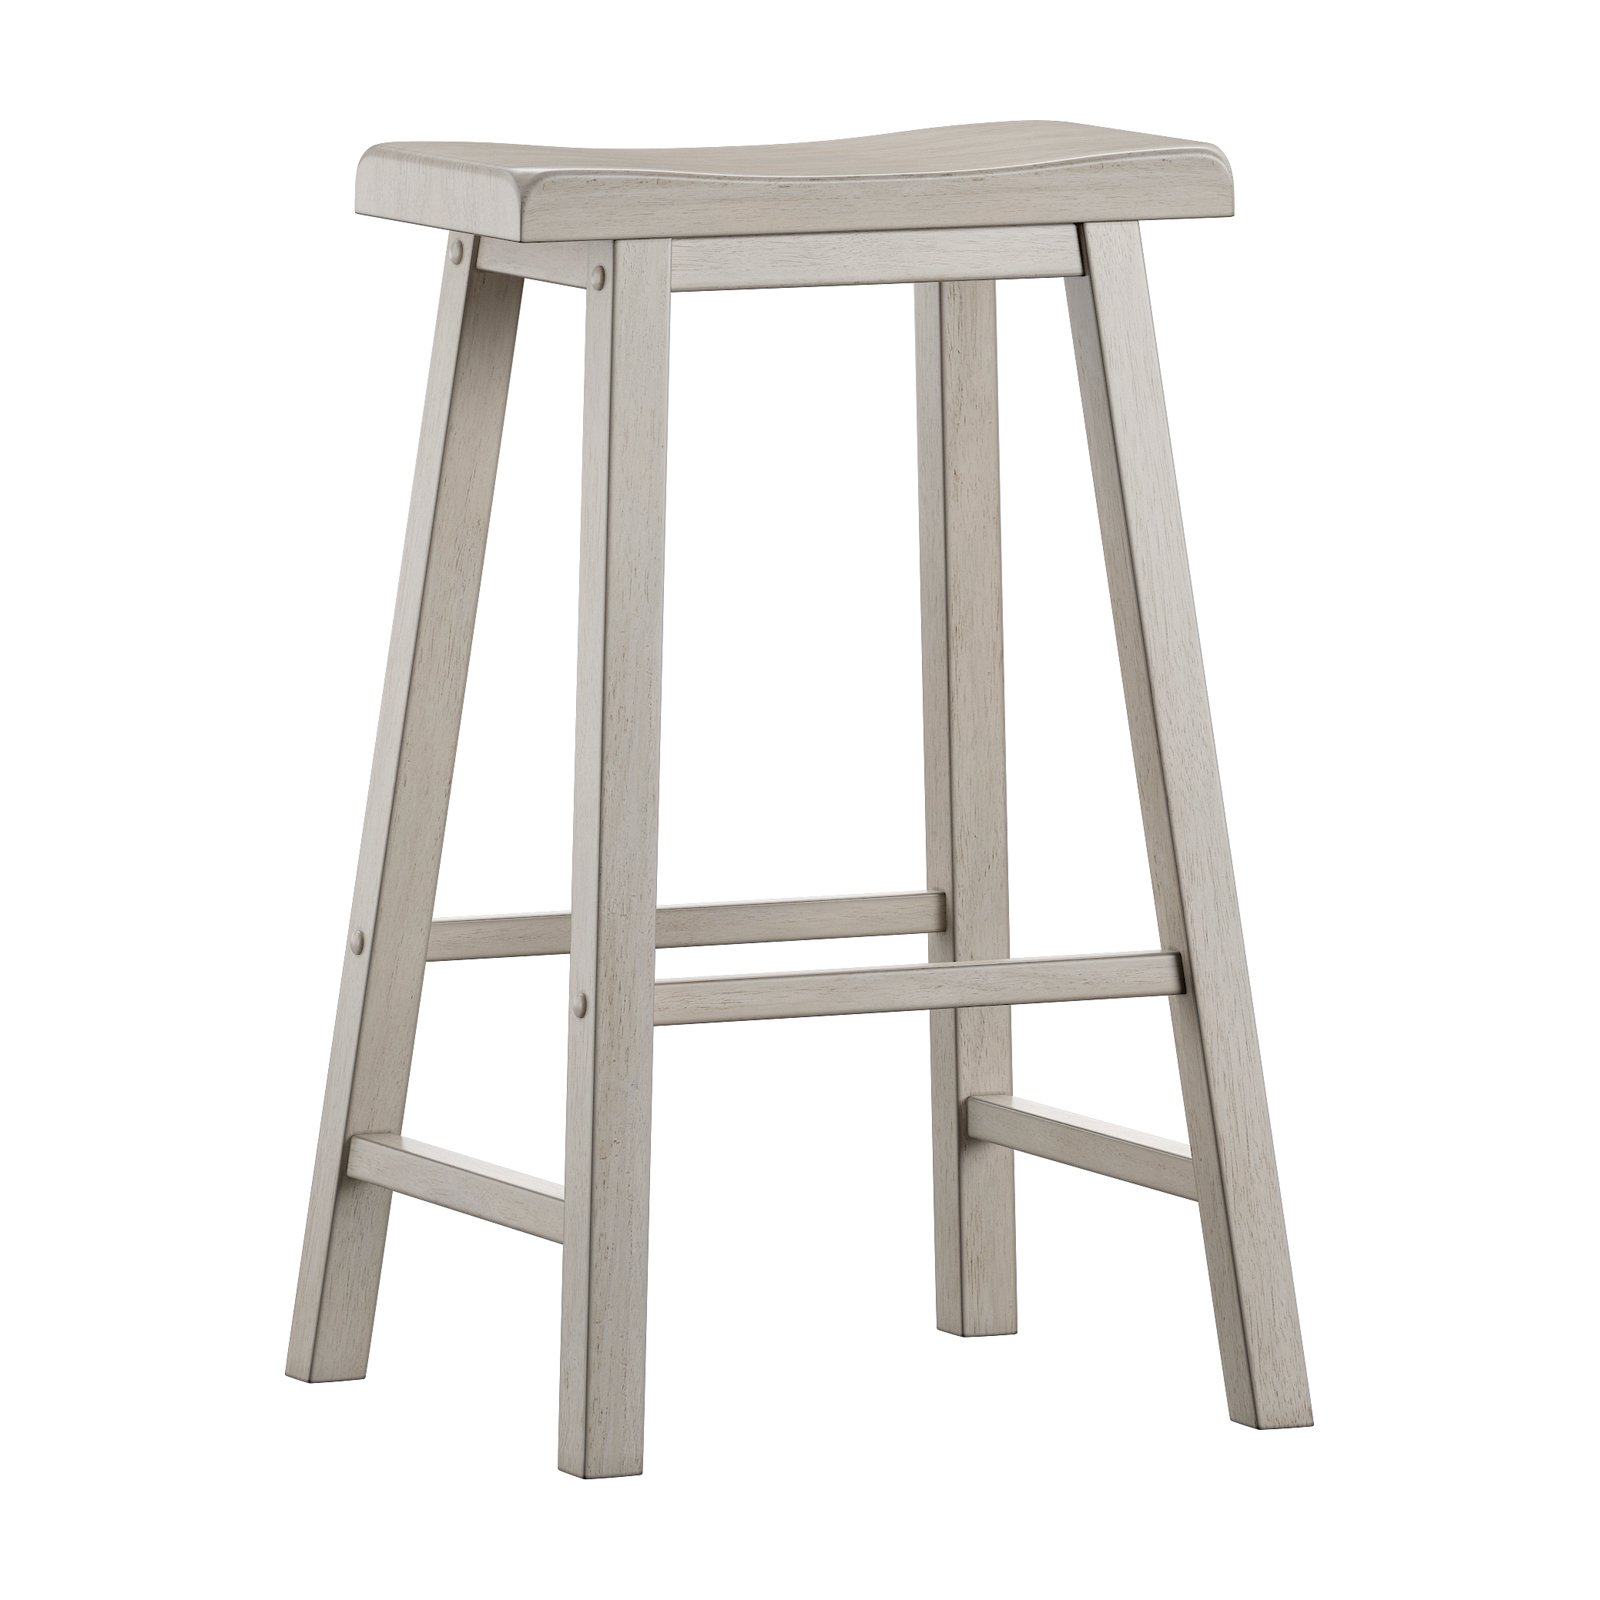 Weston Home Ashby Saddle Seat 29 In Backless Bar Stools Set Of 2 In 2019 Bar Stools Backless Bar Stools Stool